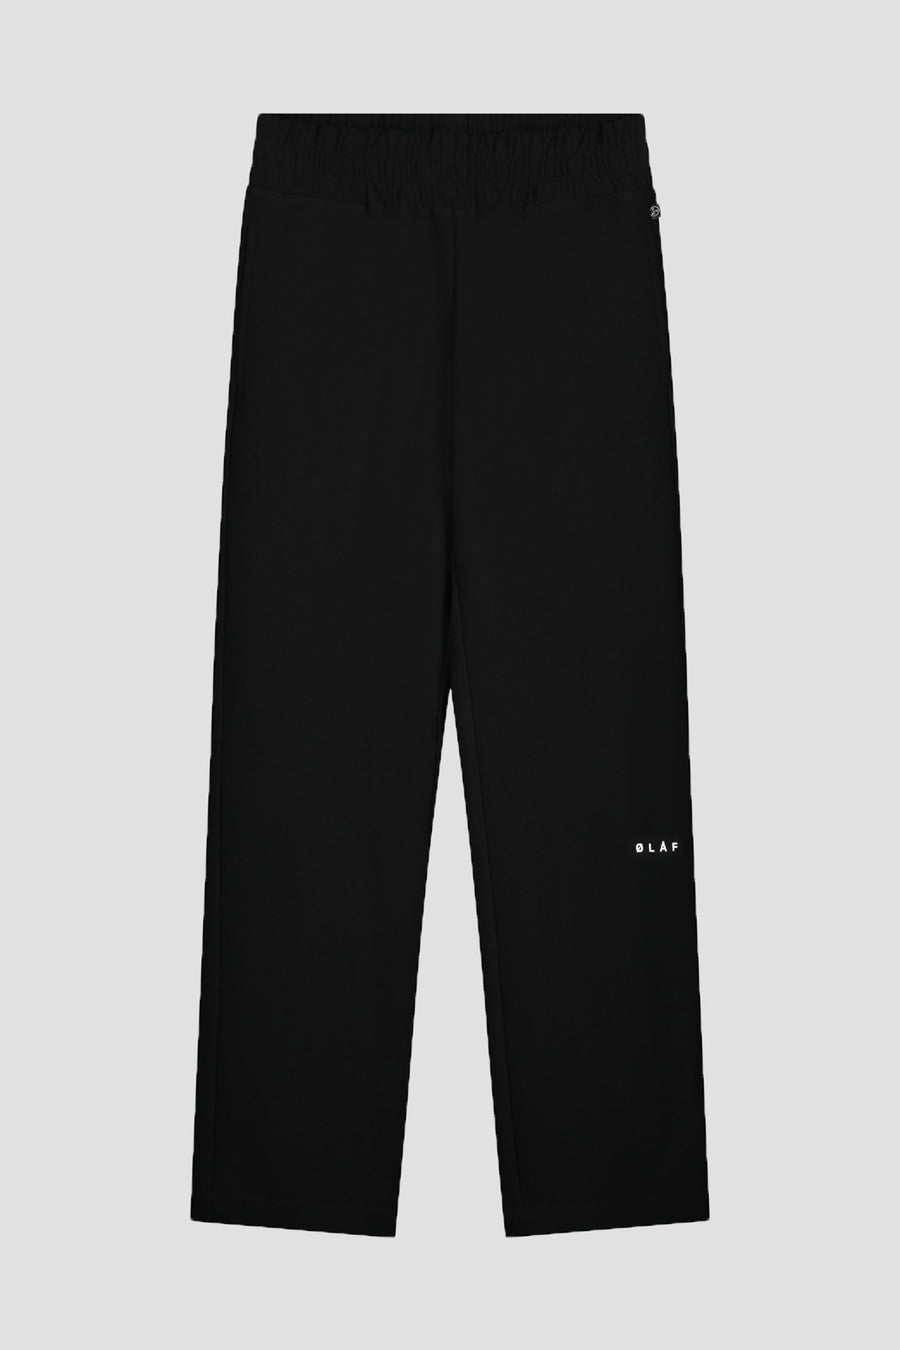 ØLÅF Elasticated Trouser - Black